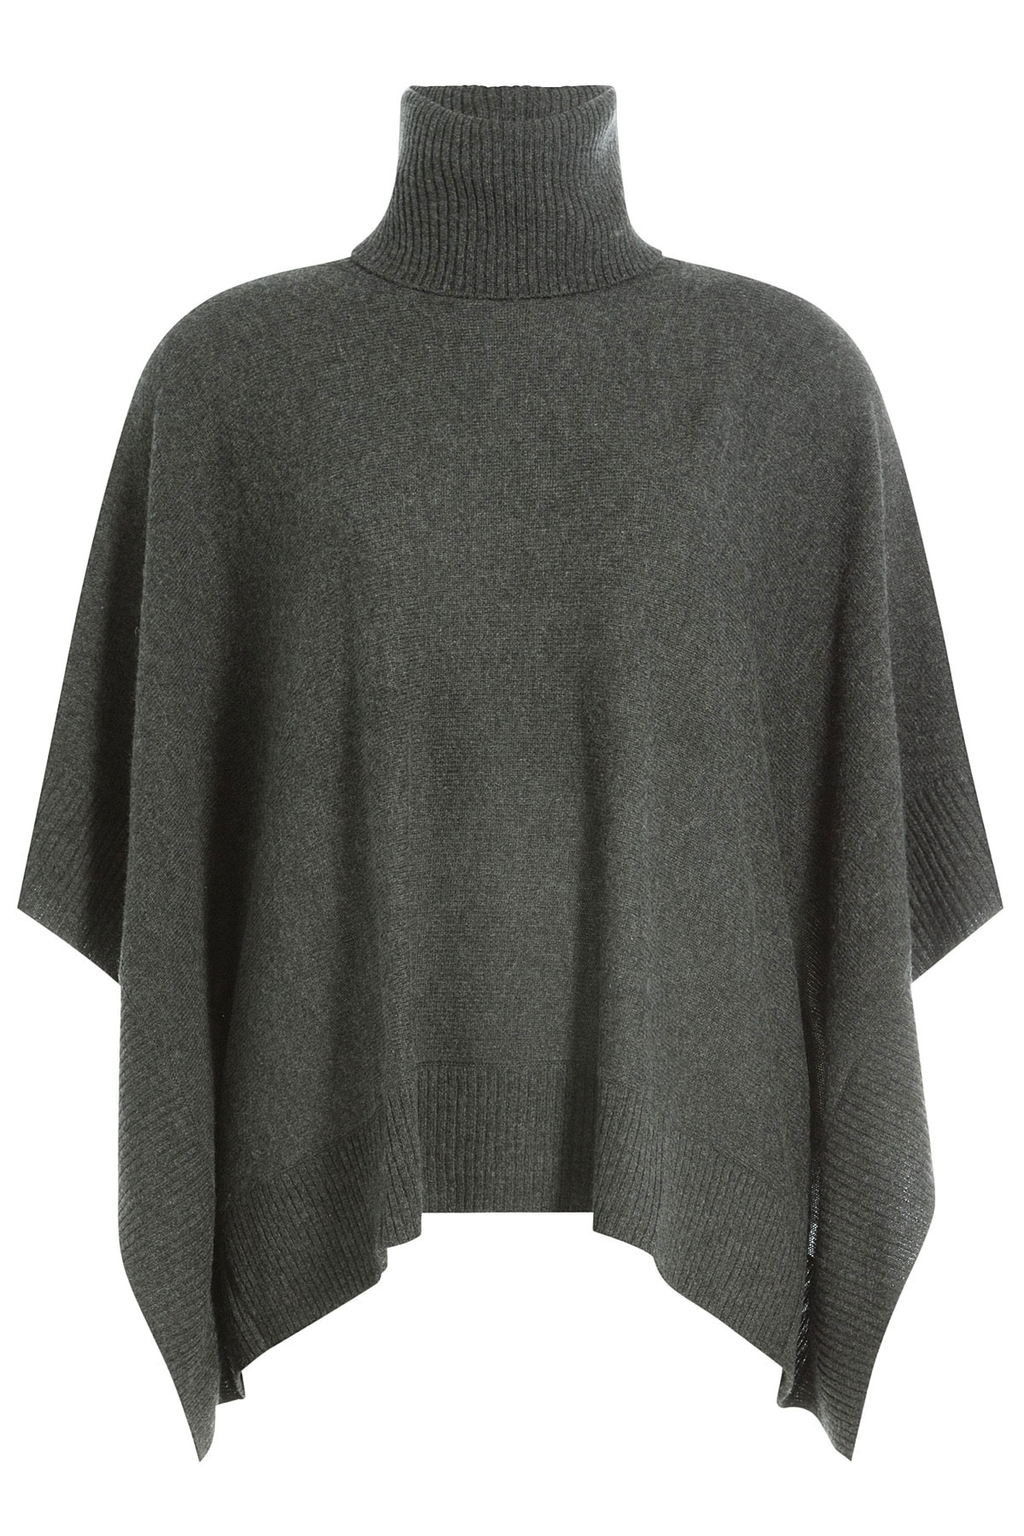 Cashmere Cape With Turtleneck - pattern: plain; length: standard; fit: loose; style: poncho/blanket; collar: high neck; predominant colour: charcoal; occasions: casual; fibres: cashmere - 100%; sleeve length: half sleeve; texture group: knits/crochet; collar break: high; pattern type: fabric; sleeve style: cape/poncho sleeve; season: a/w 2016; wardrobe: highlight